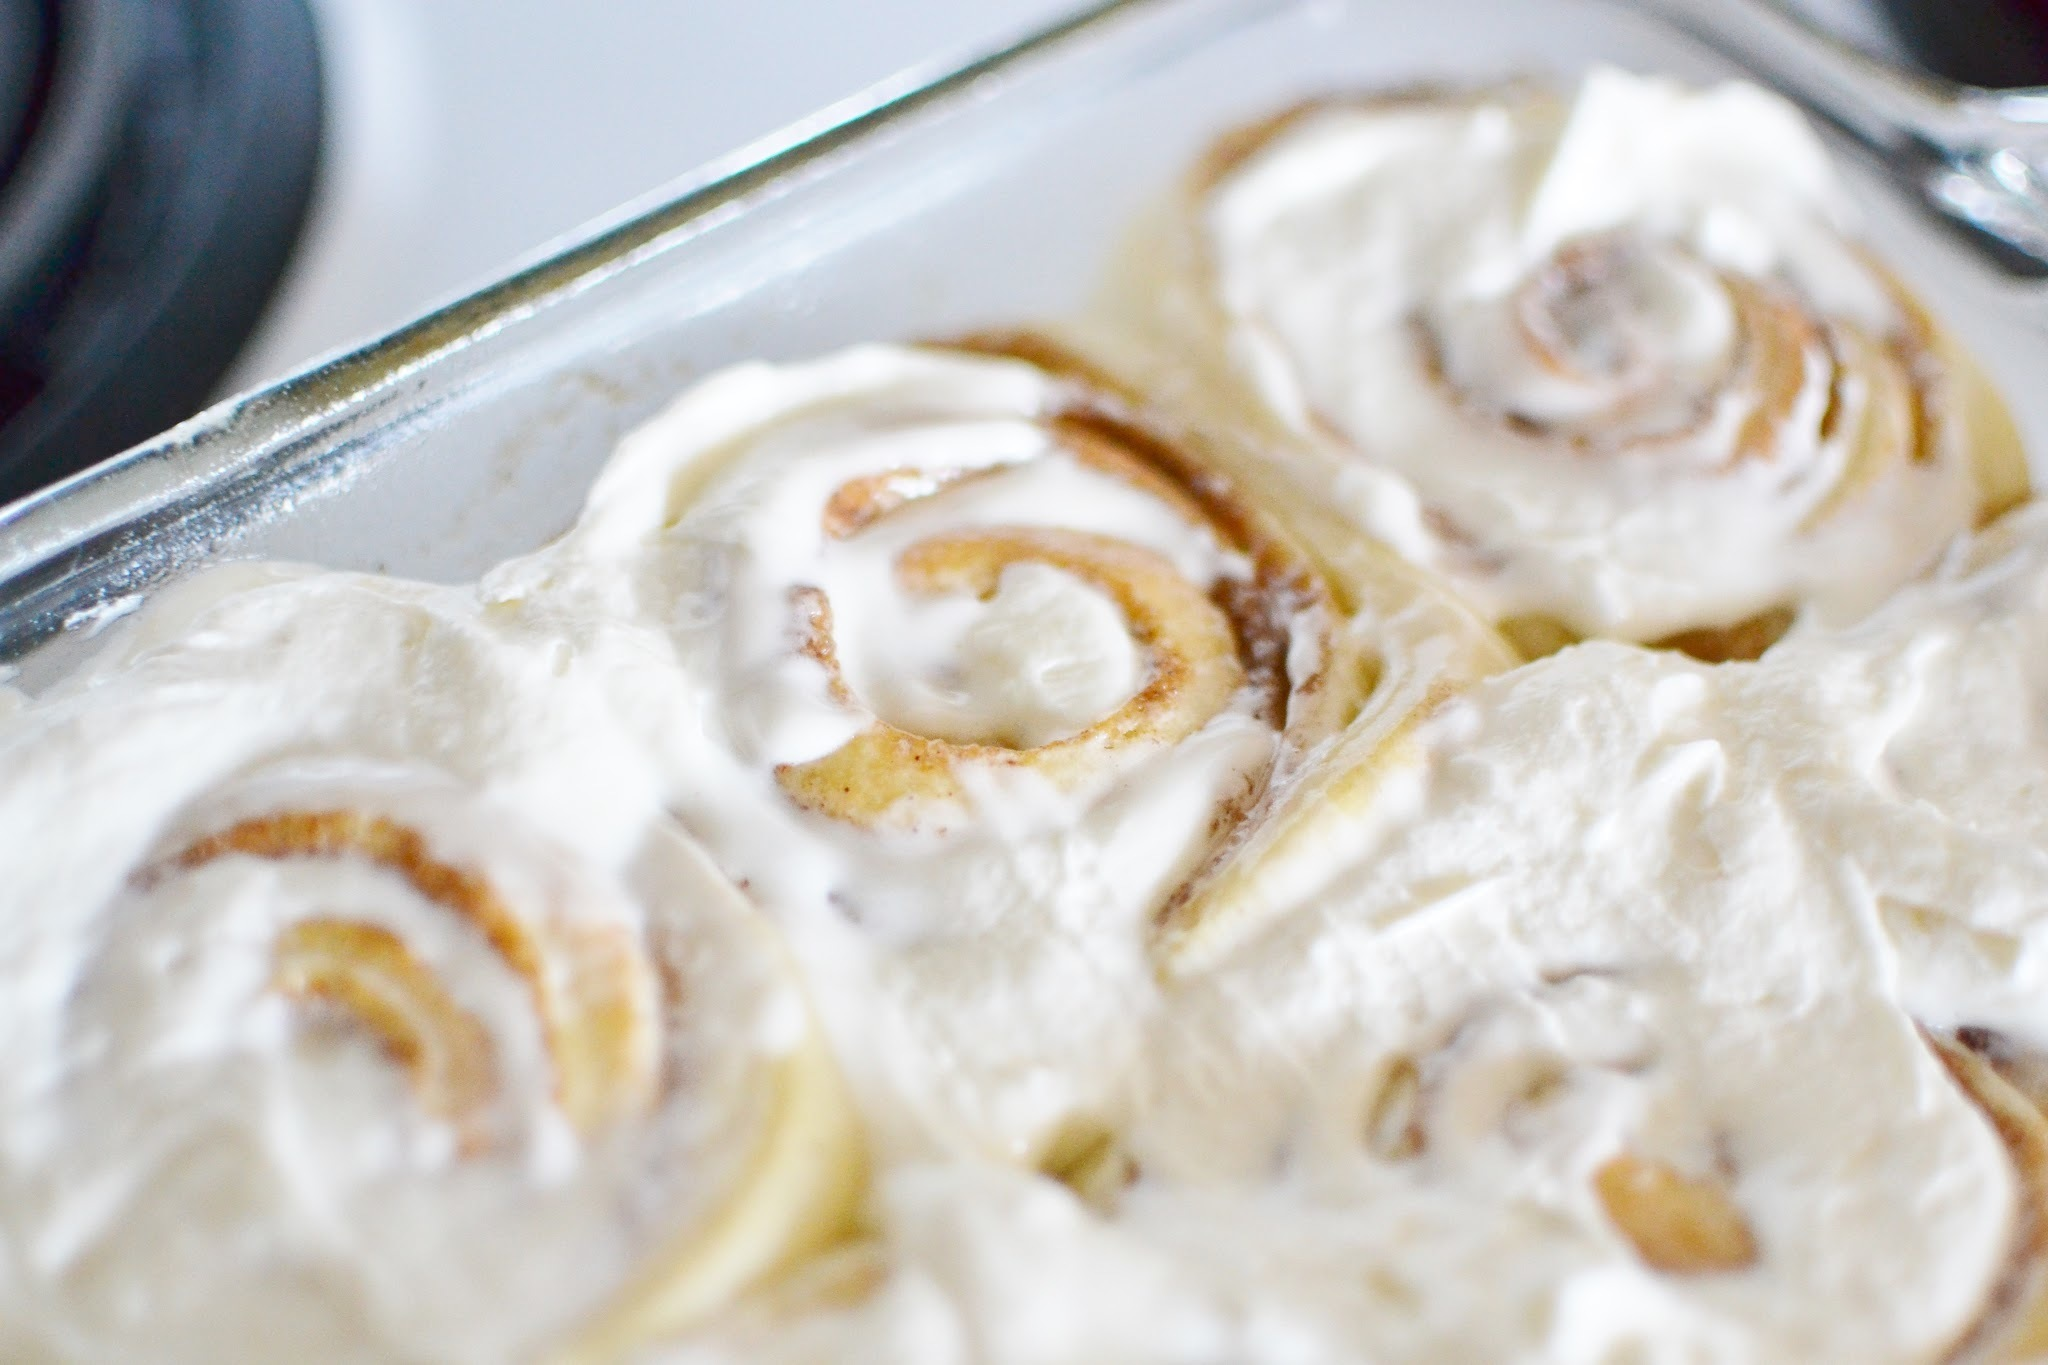 Cinnabon Cinnamon Rolls with Whipped Cream Cheese Frosting